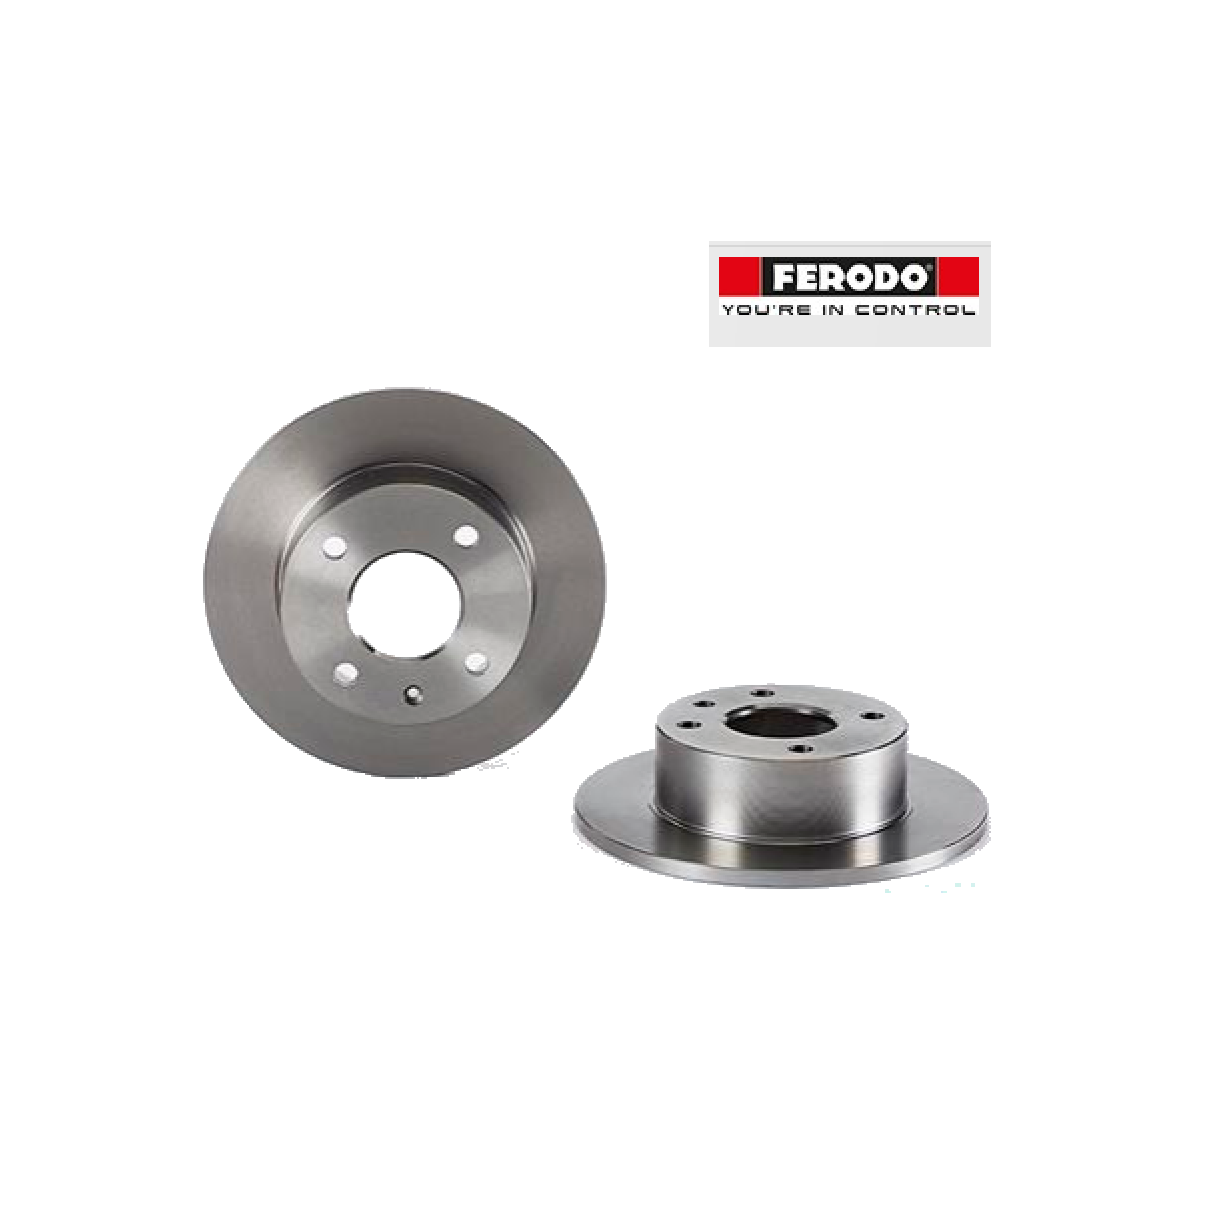 PAIR FRONT BRAKE DISCS FORD ESCORT - ORION FERODO FOR 1629475